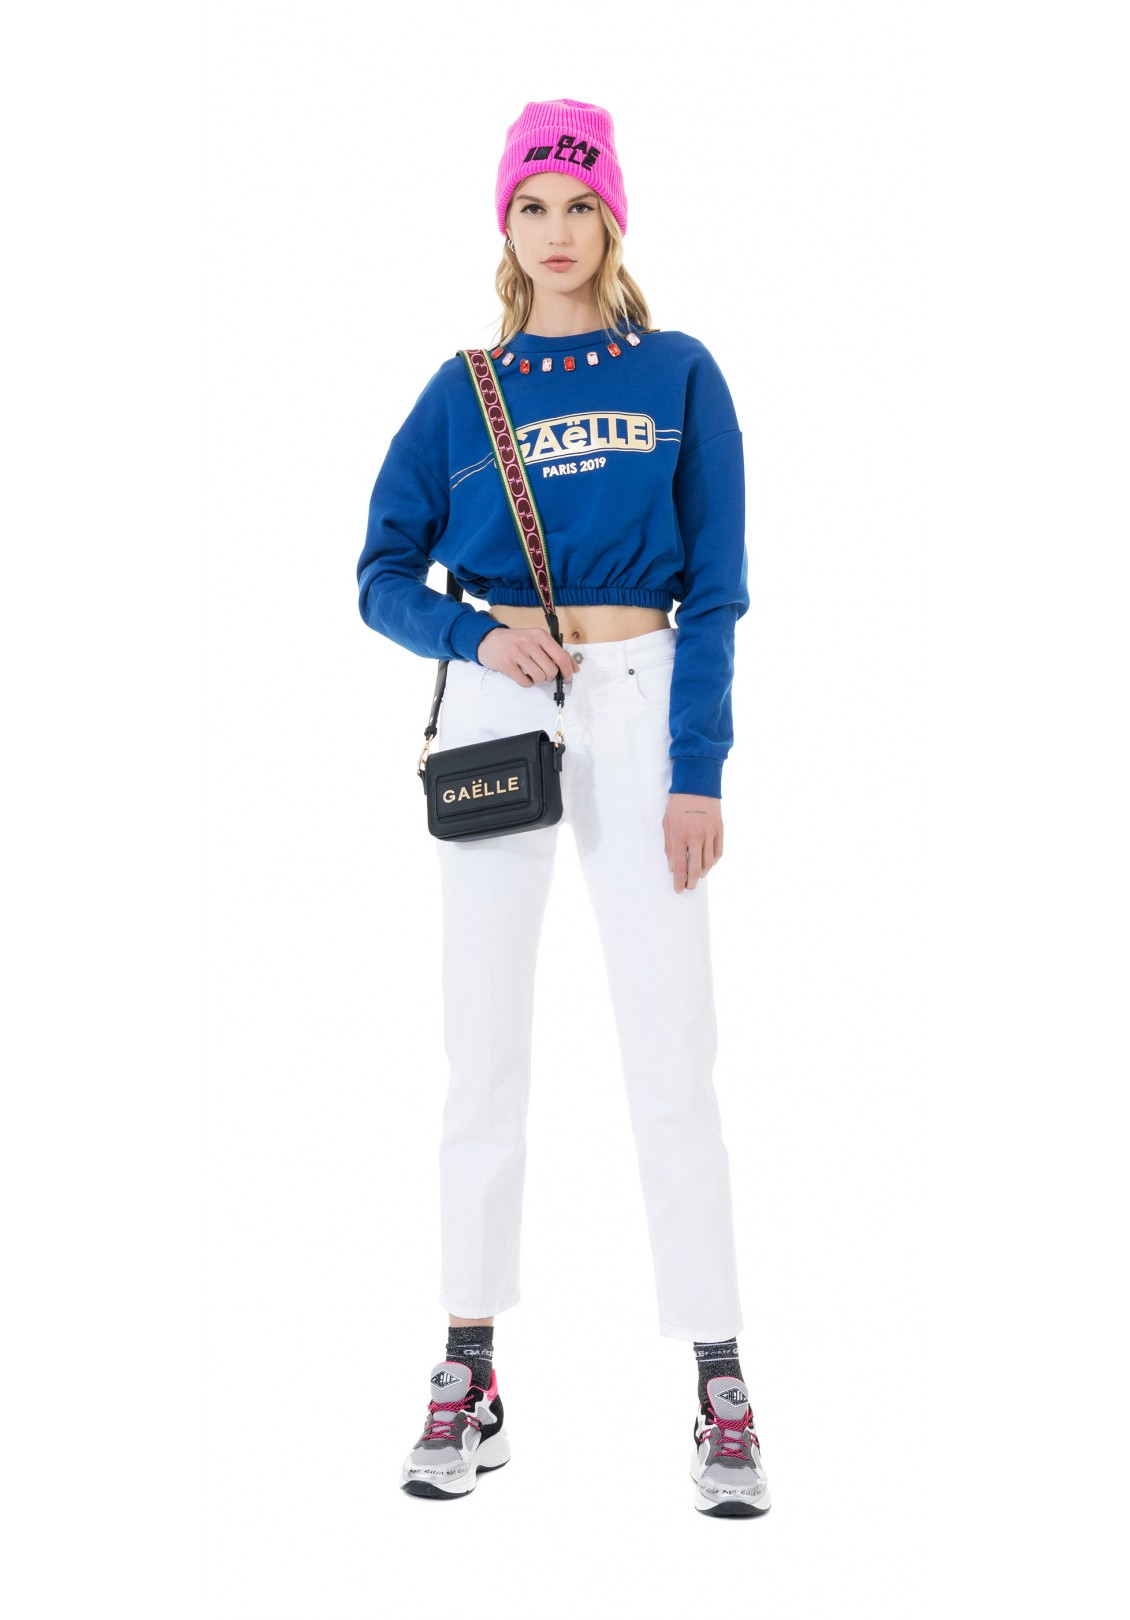 SWEATSHIRT - GBD4962 - GAELLE PARIS